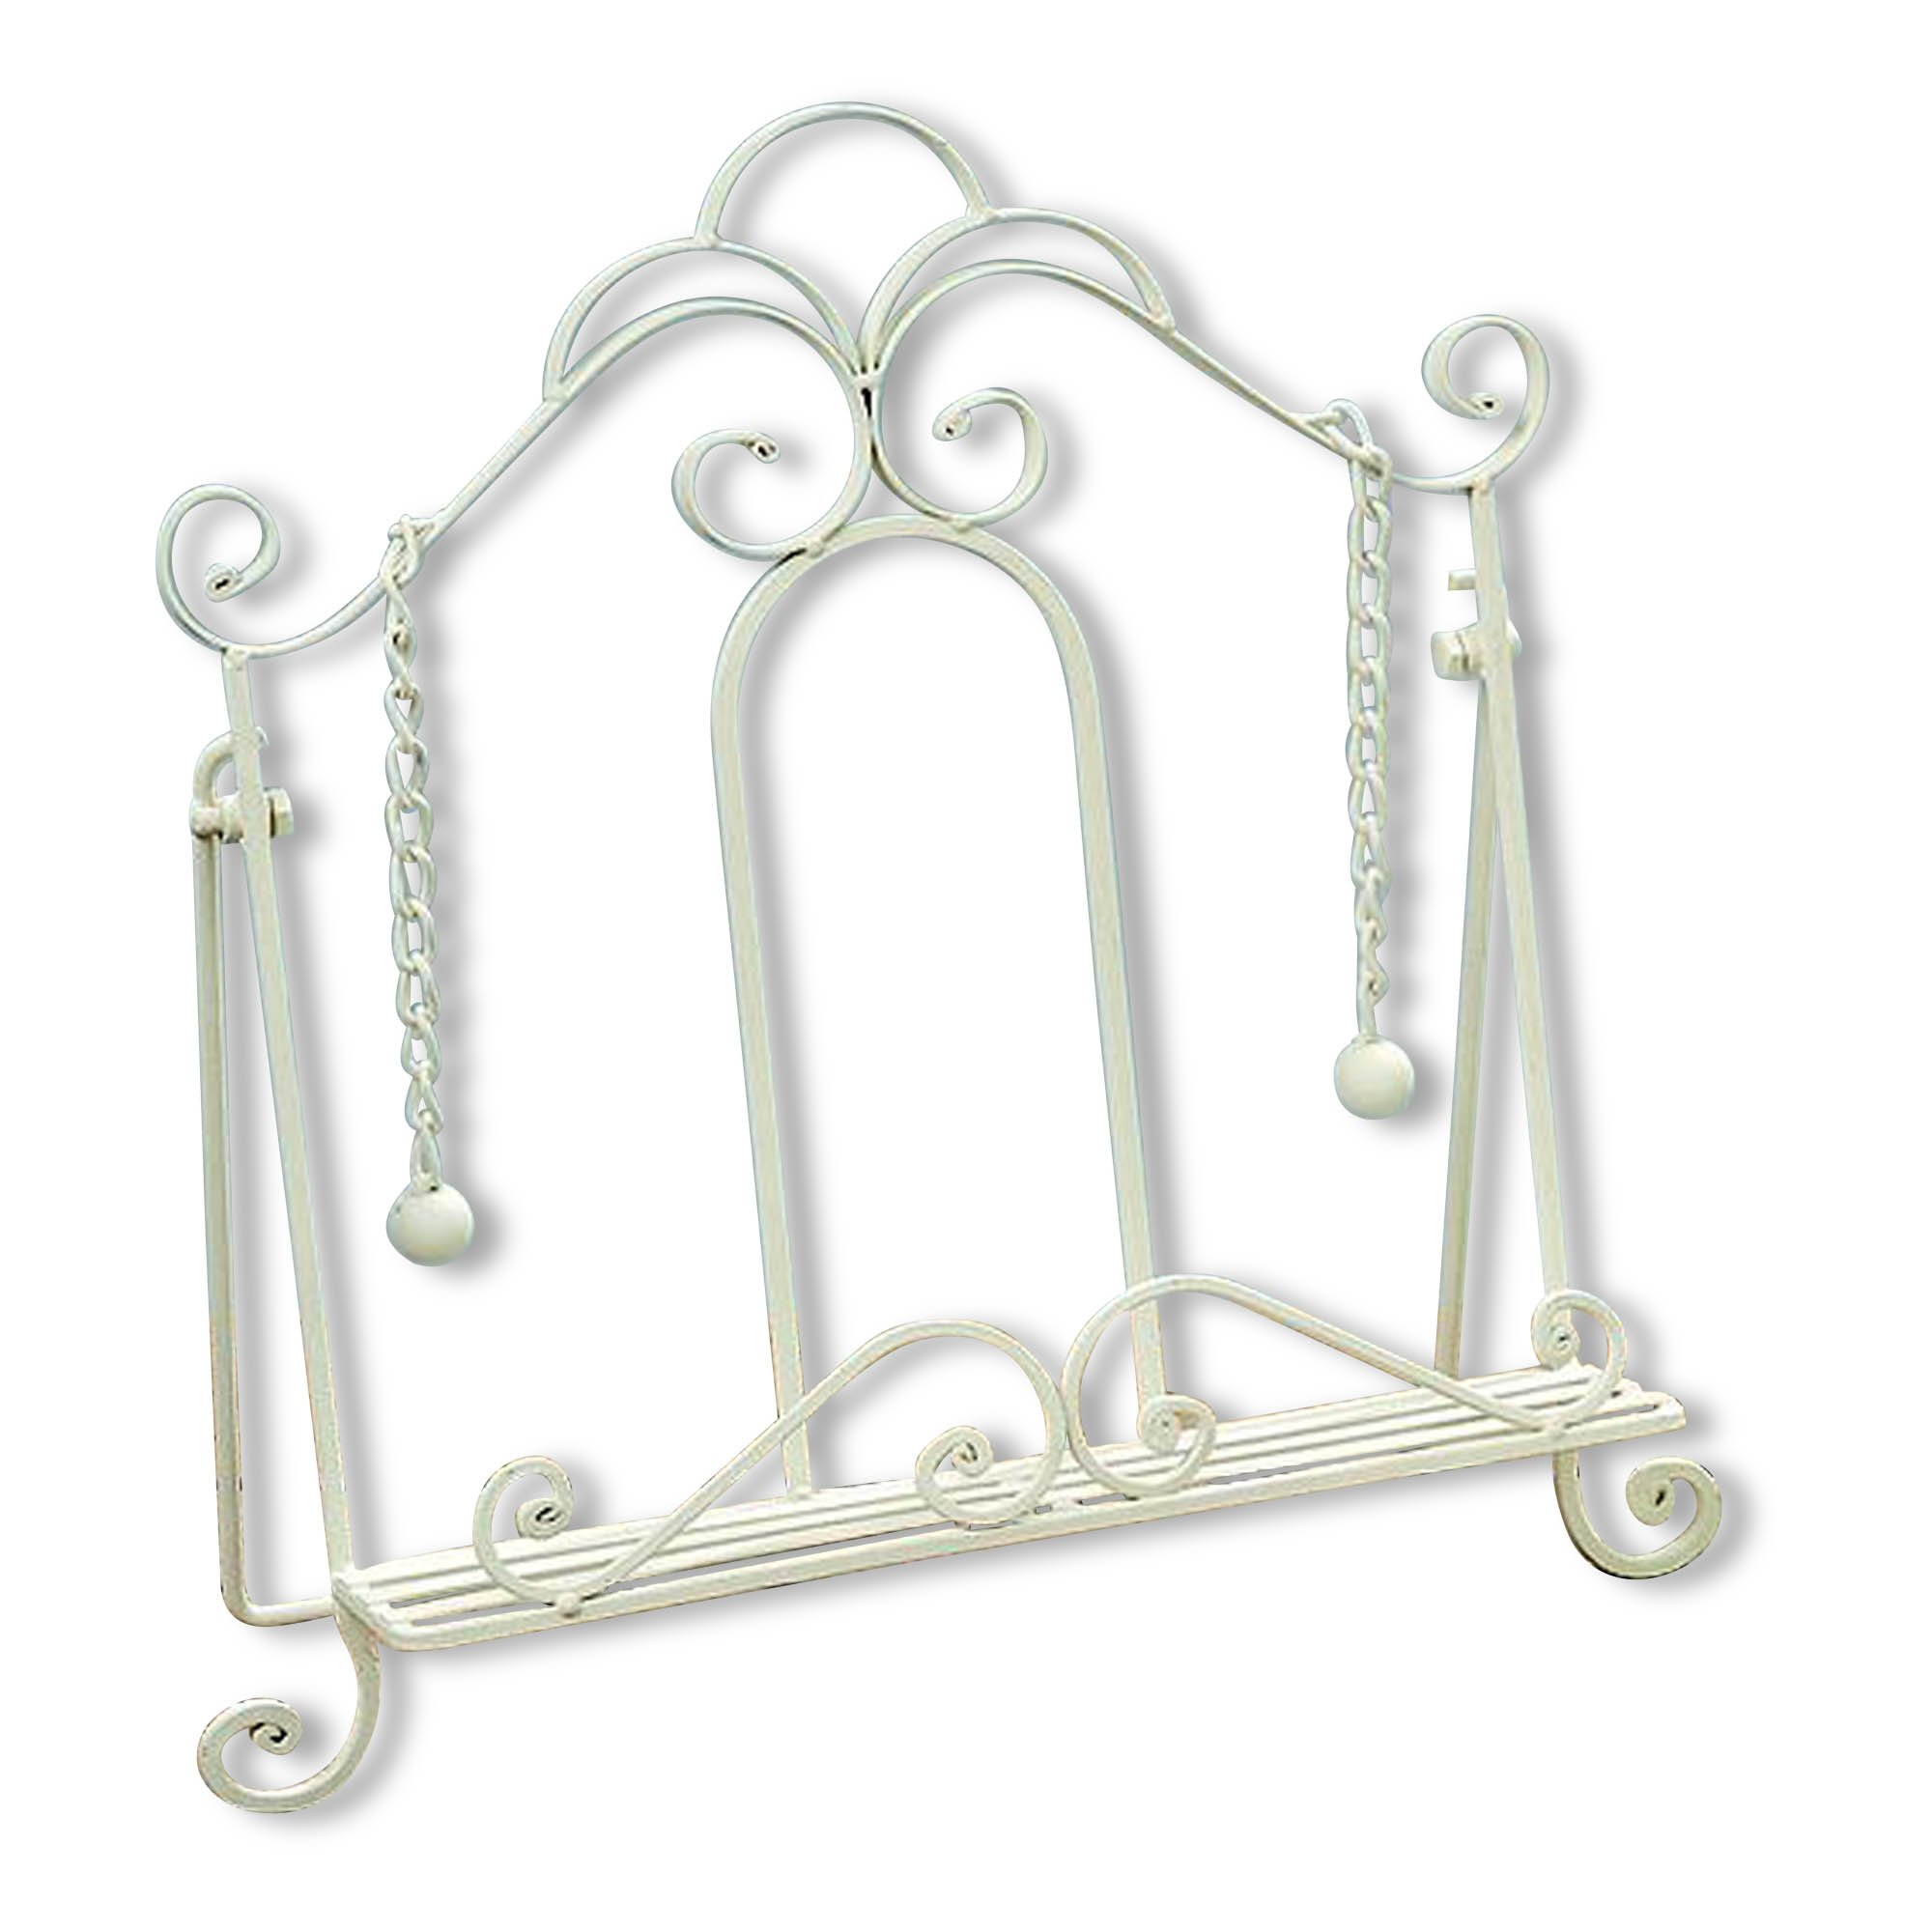 Whole House Worlds The Gastro Chic Cook Book Stand, Artisinal Design, White, Weighted Drop Chain Page Holders, Iconic Scroll Work Details, Easel Back, 13 3/4 Inches Tall, By by Whole House Worlds